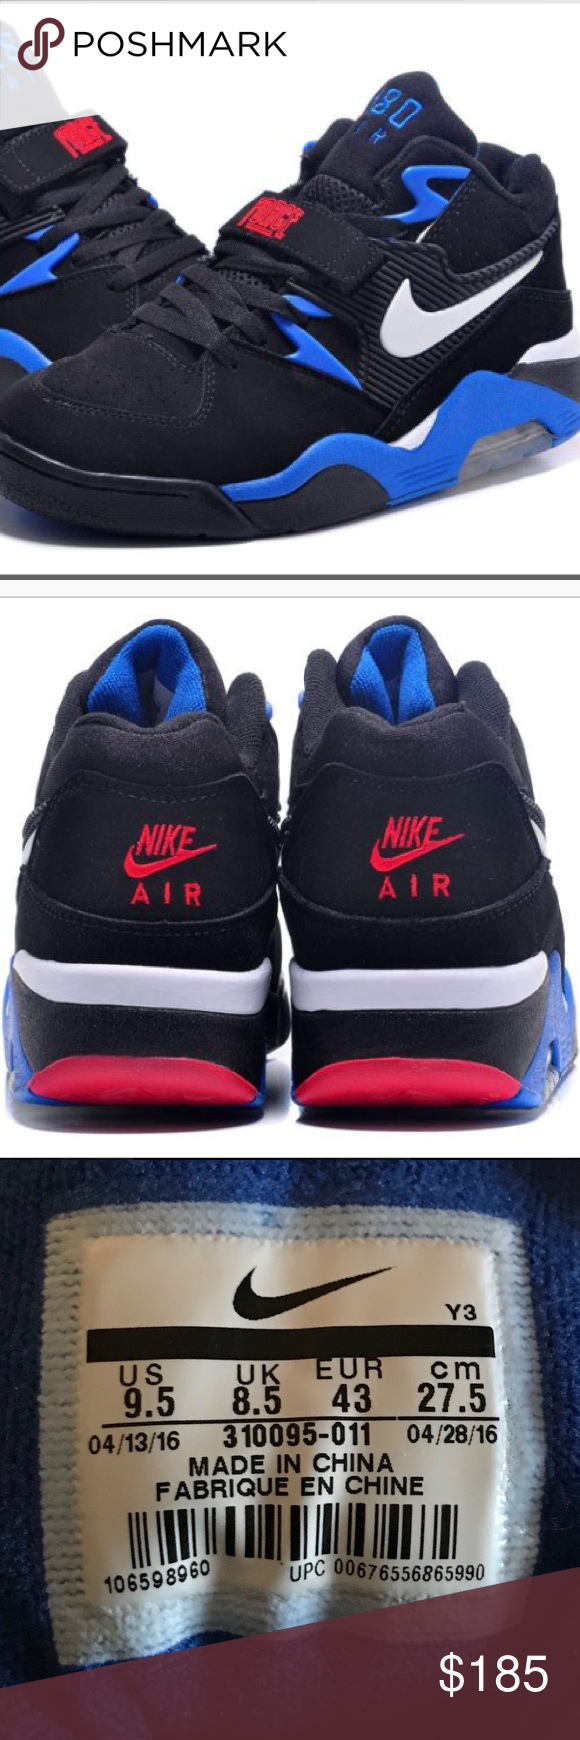 the latest 92ca0 20505 Nike Air Force 180 Mid Charles Barkley Brand new. Nike Air Force 180 Mid  Charles Barkley. Men s size 9.5. Black White Sport Royal  Red.